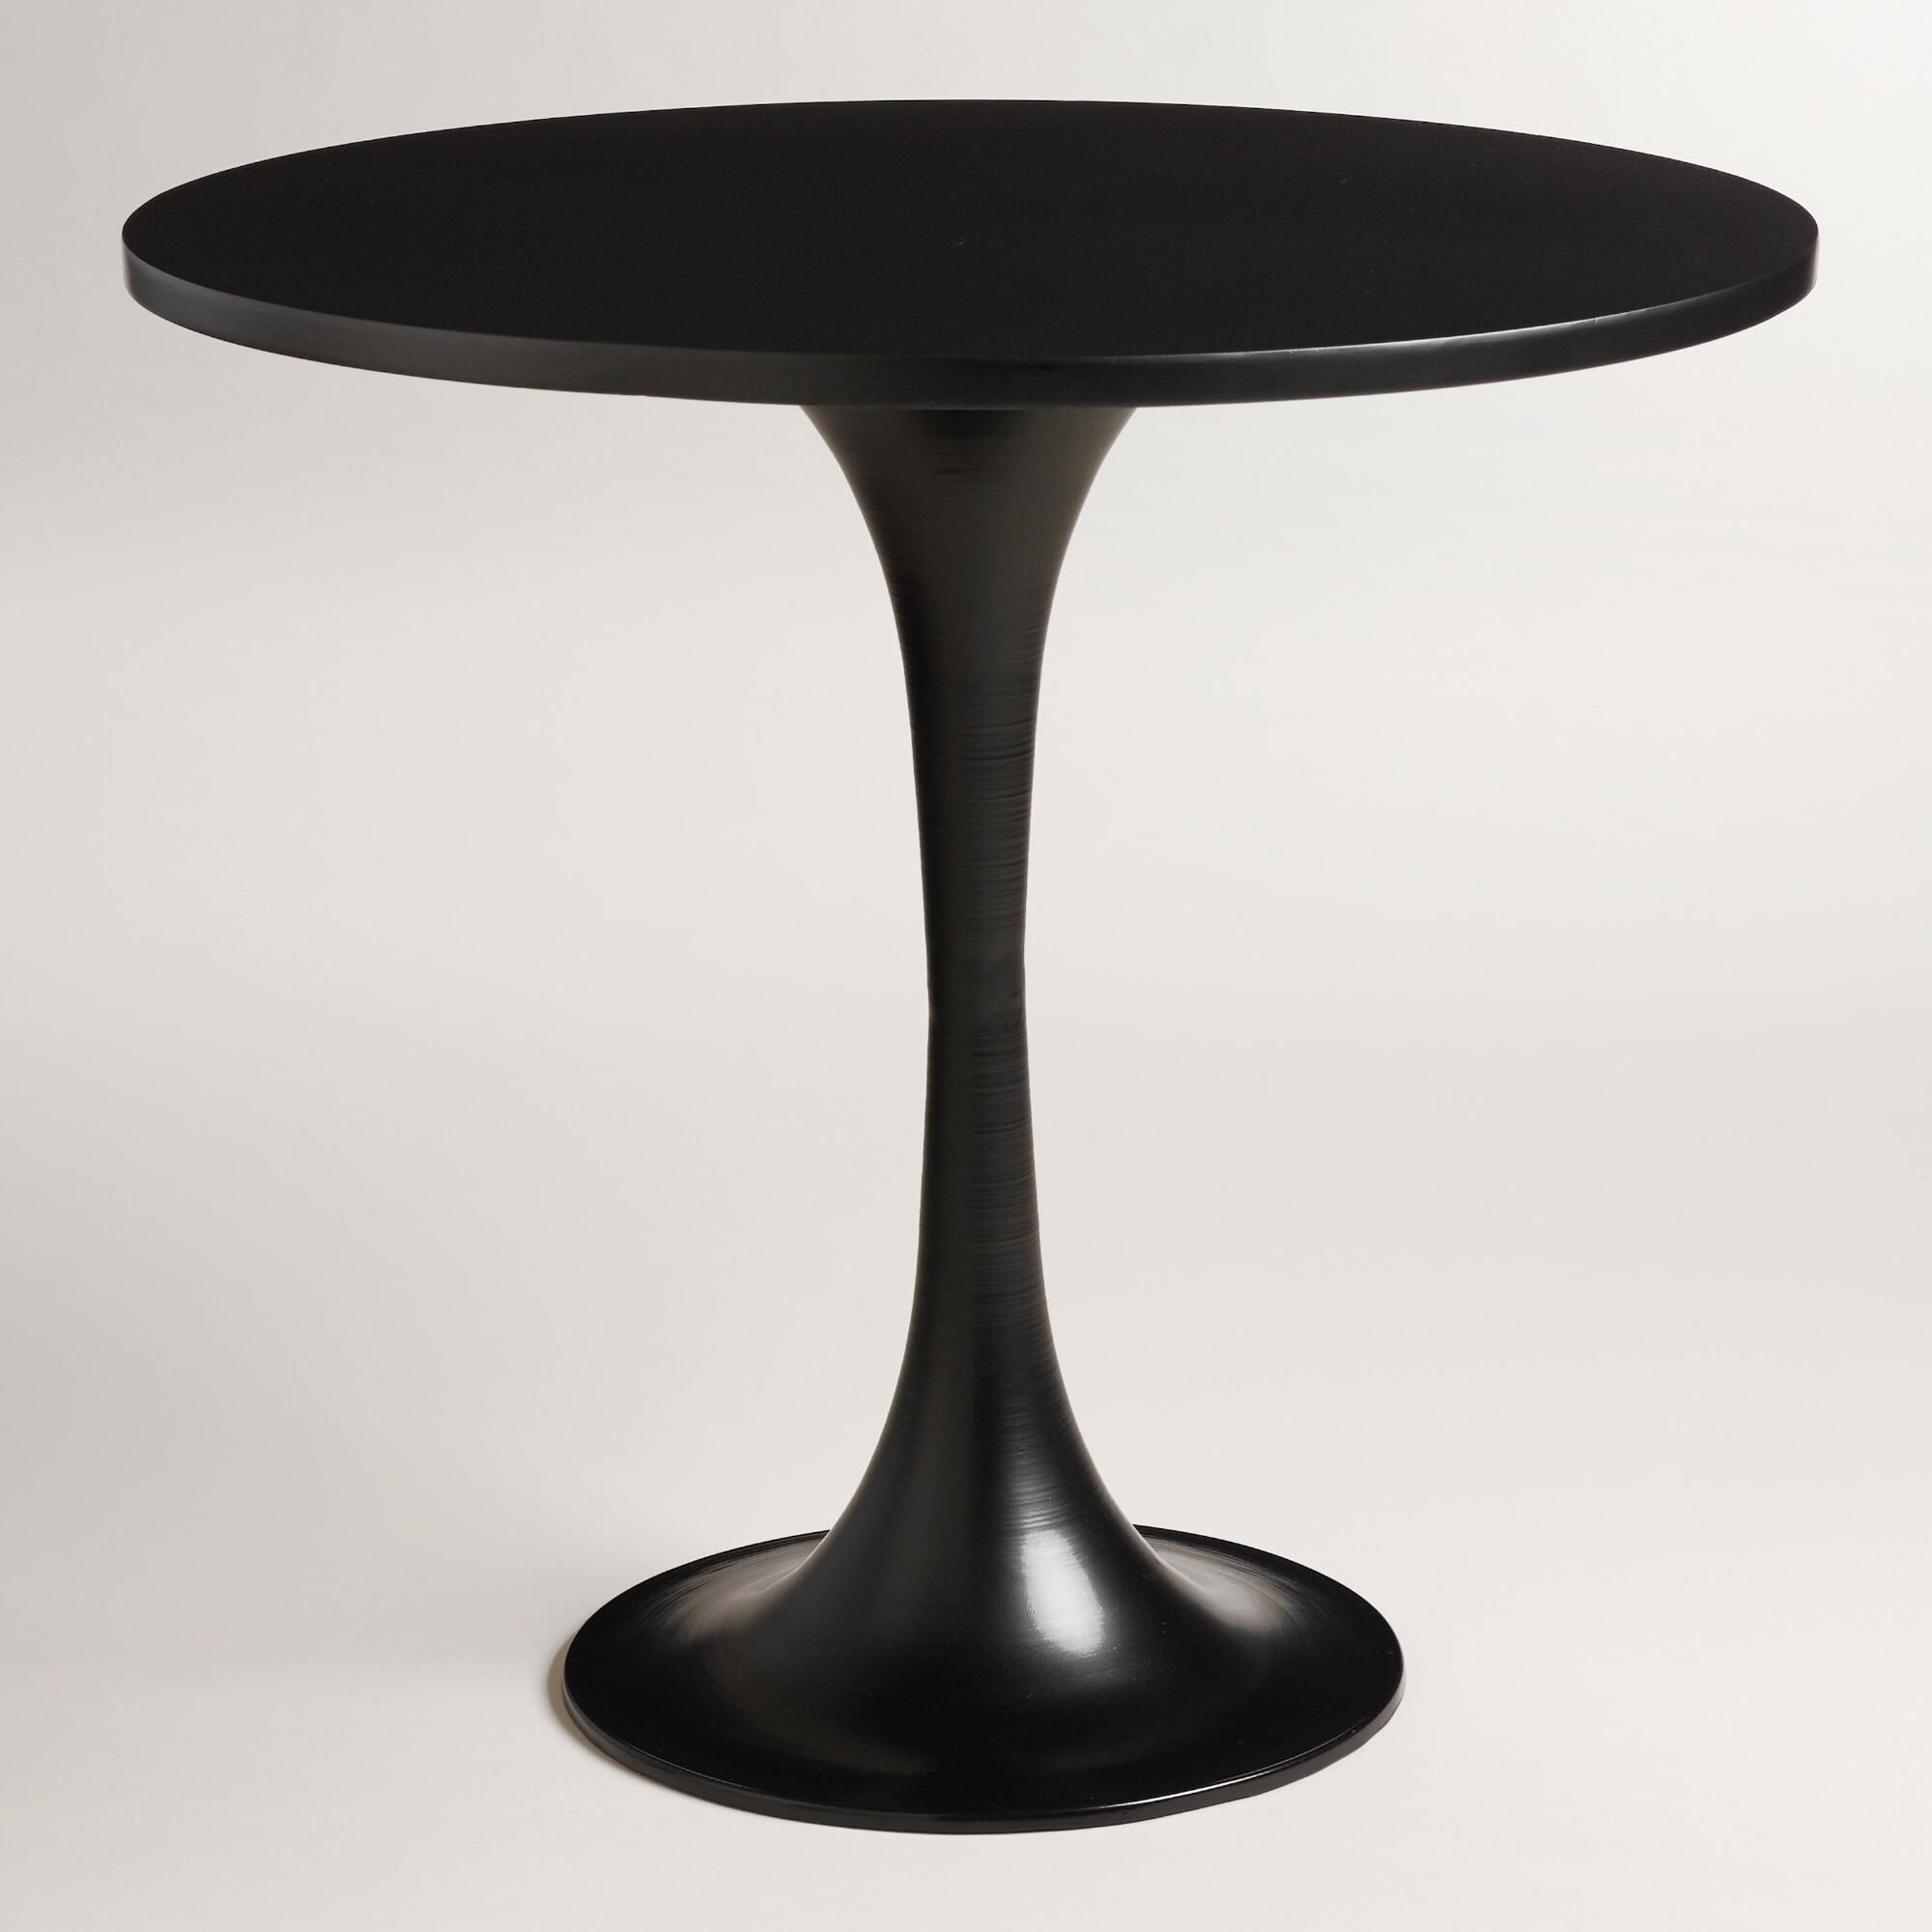 - Round Metal Glynn Accent Table Accent Table, Round Metal Table